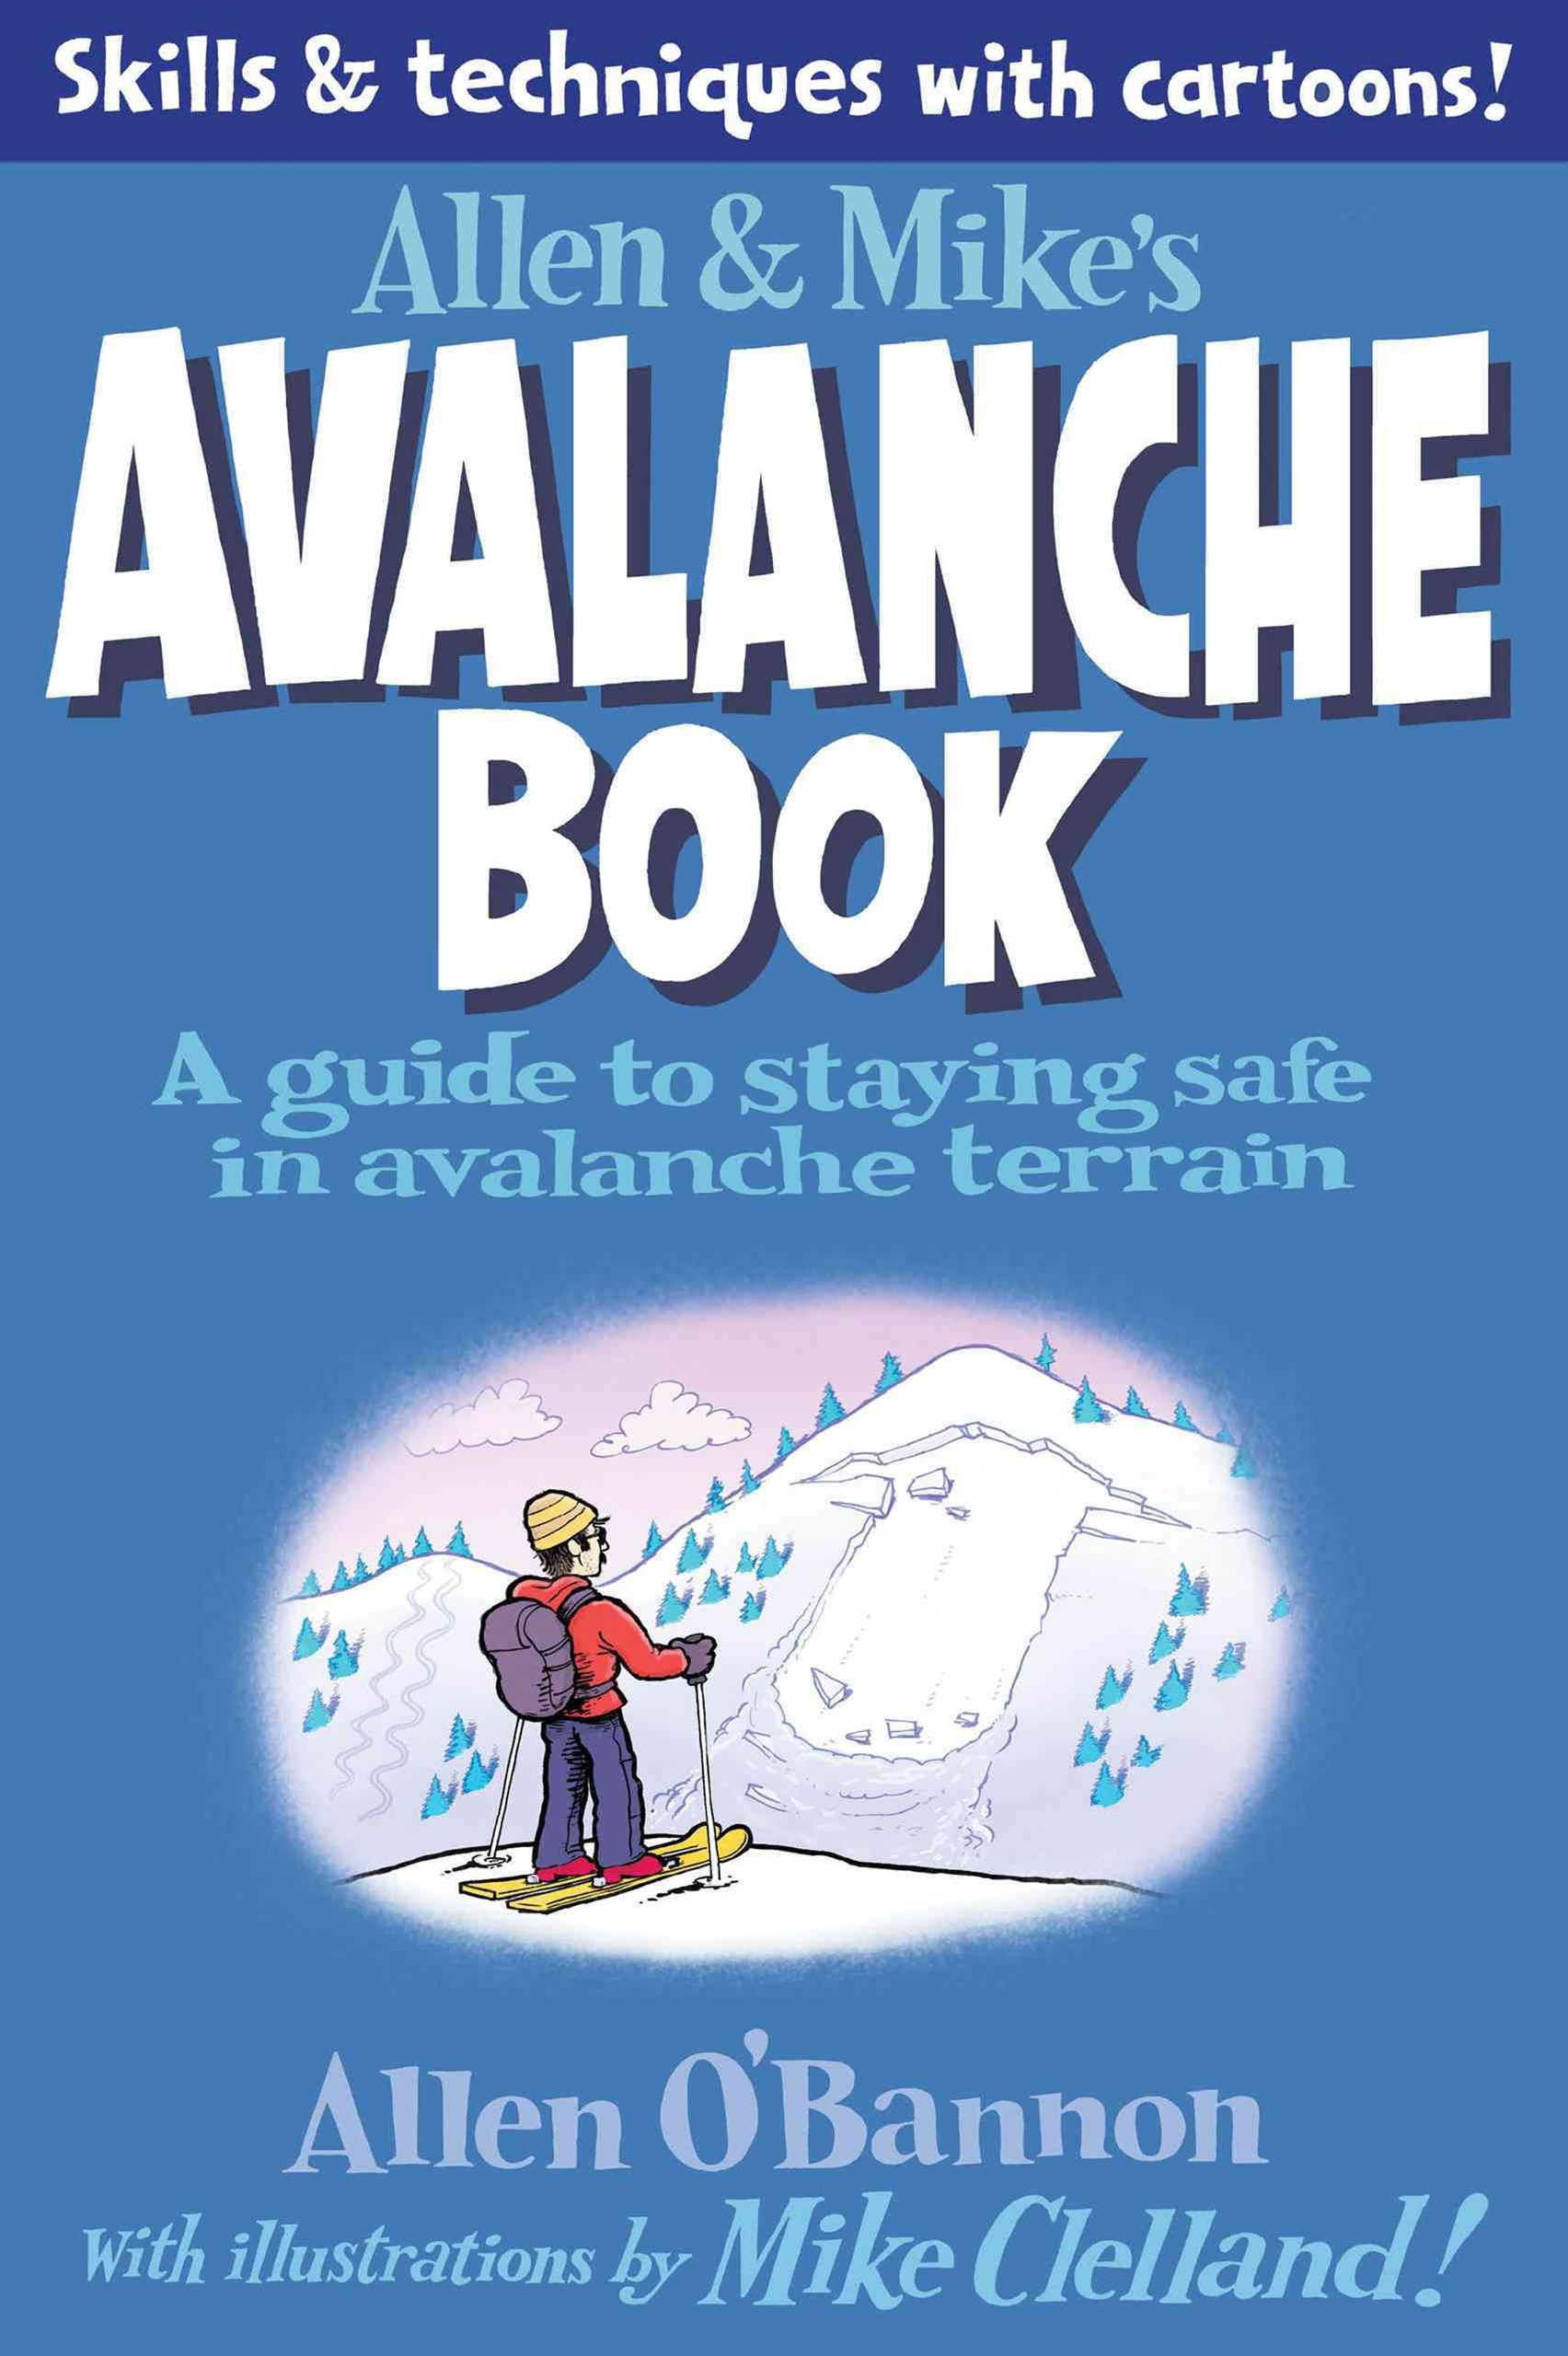 Allen and Mike's Avalanche Book